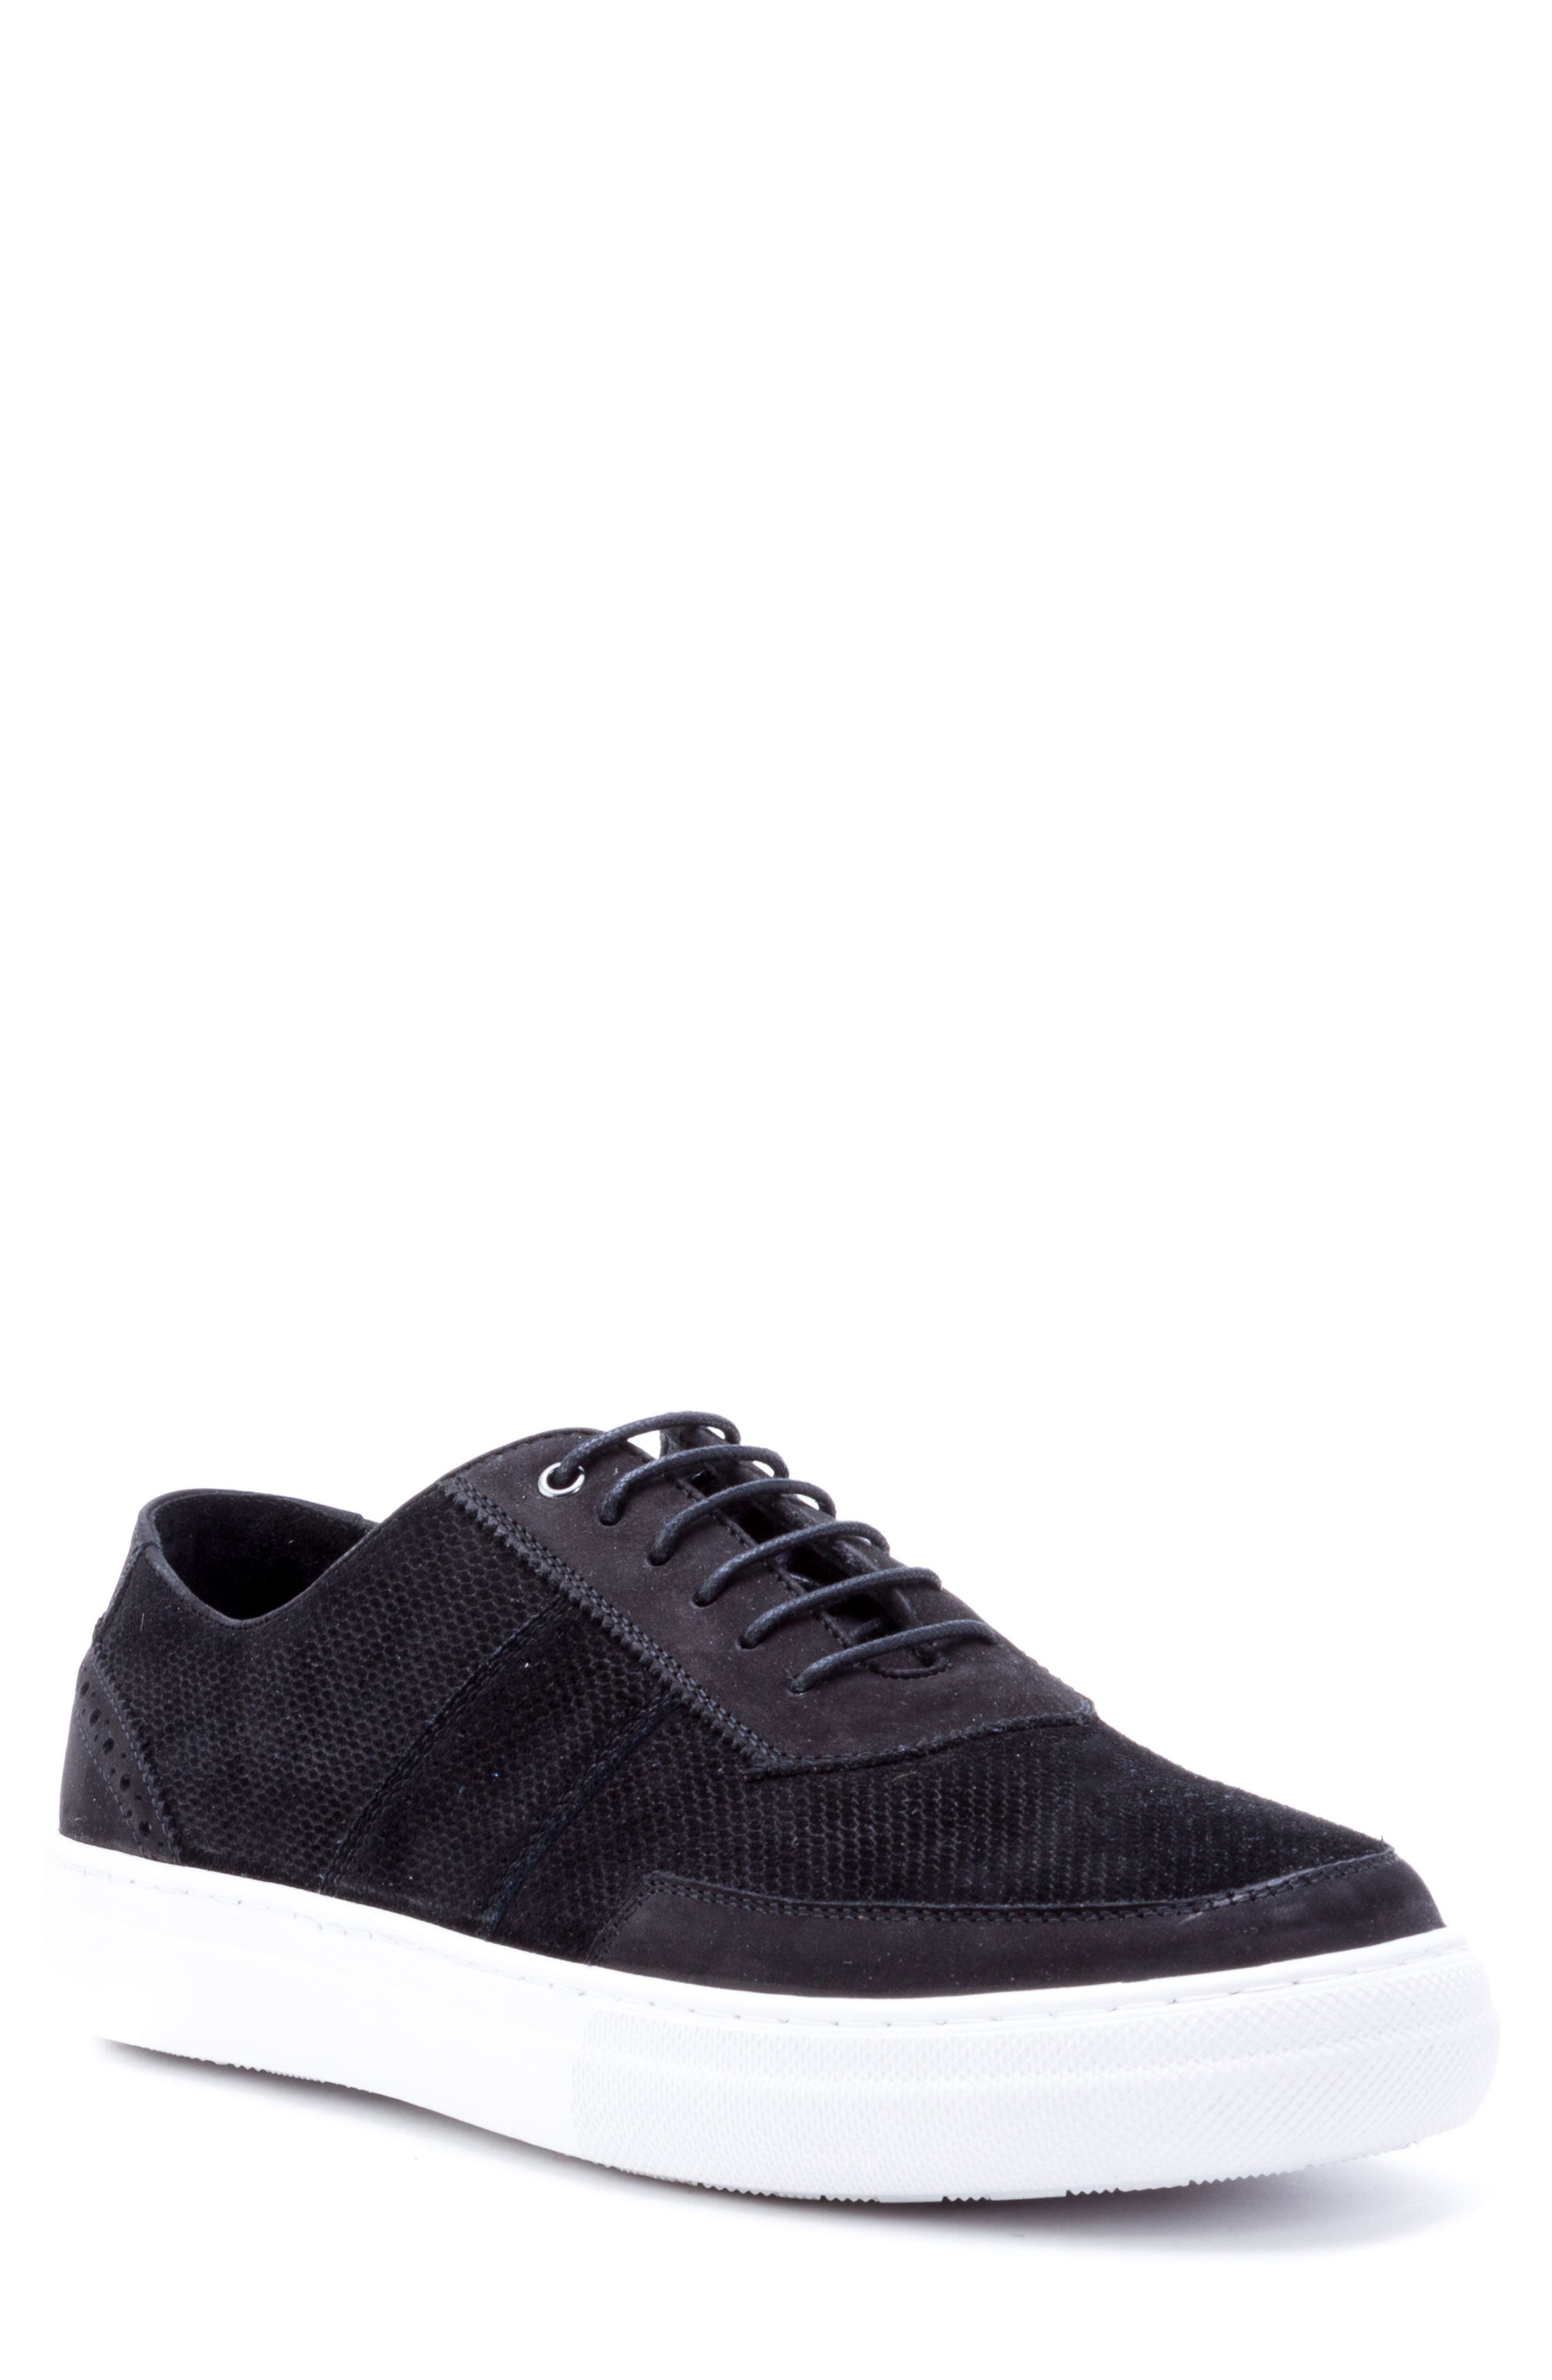 House Low Top Sneaker,                             Main thumbnail 1, color,                             Black Suede/ Leather